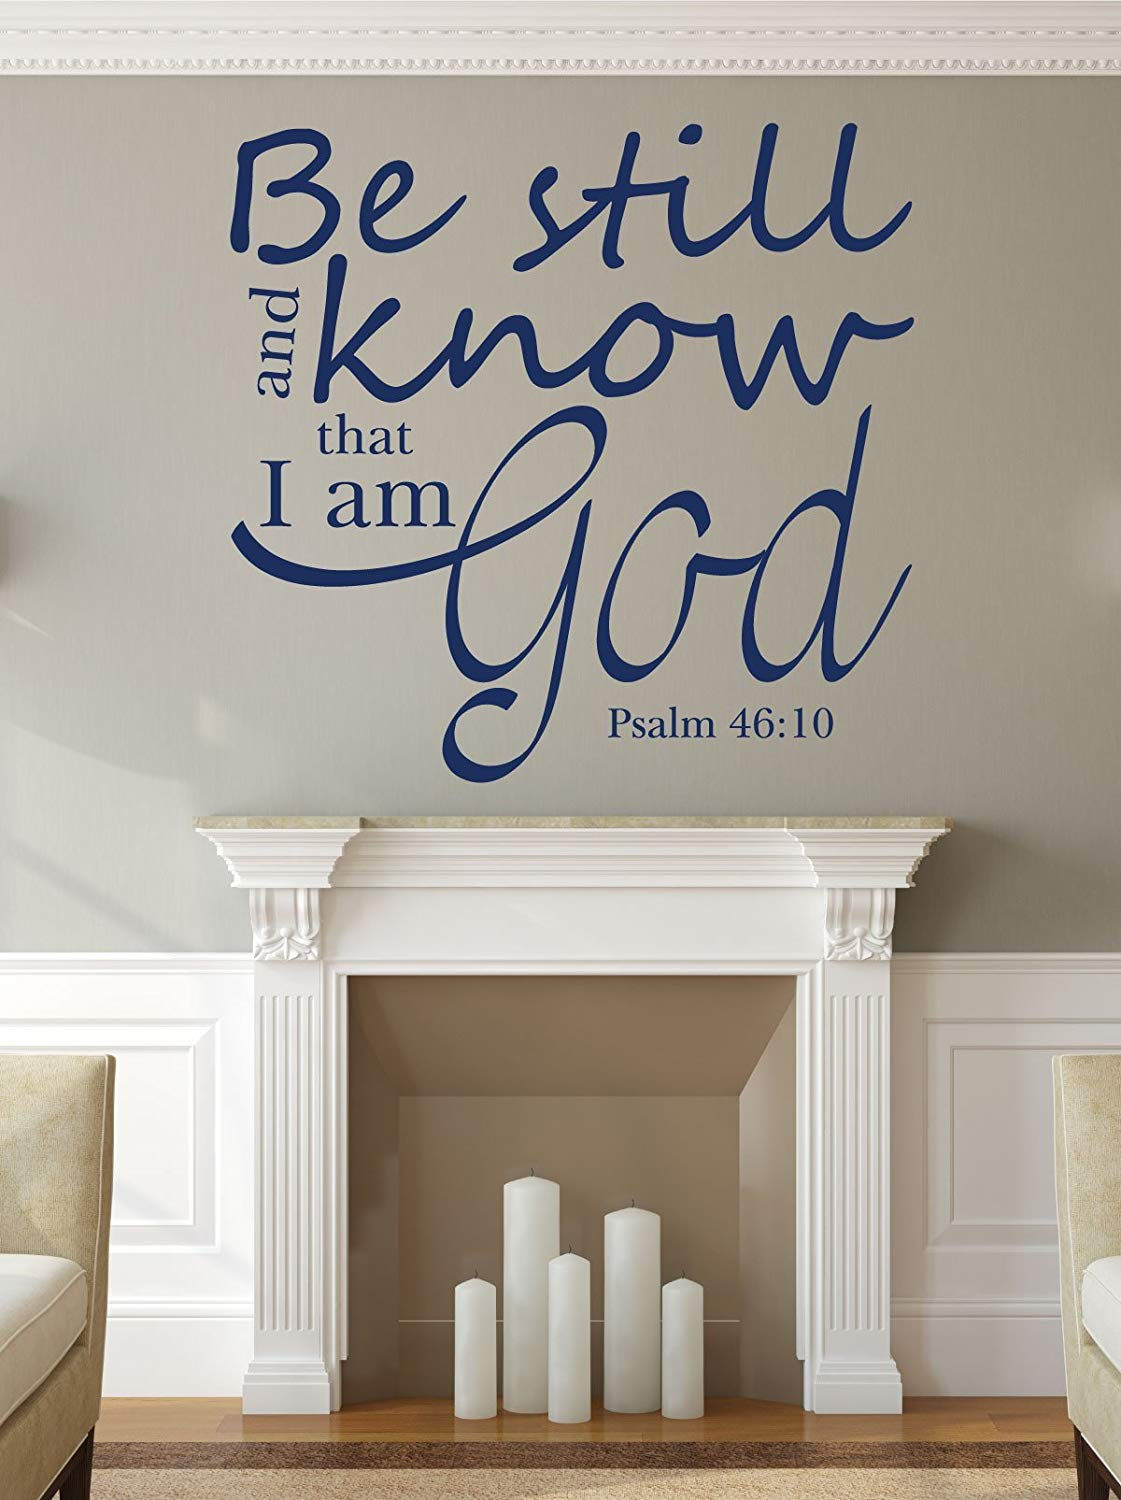 Bible Verse Wall Decal - Psalm 46:10 - Be Still and Know That I Am God - Religious Wall Decals, Scripture Wall Art, Christian Home Decor, Church Wall Decals